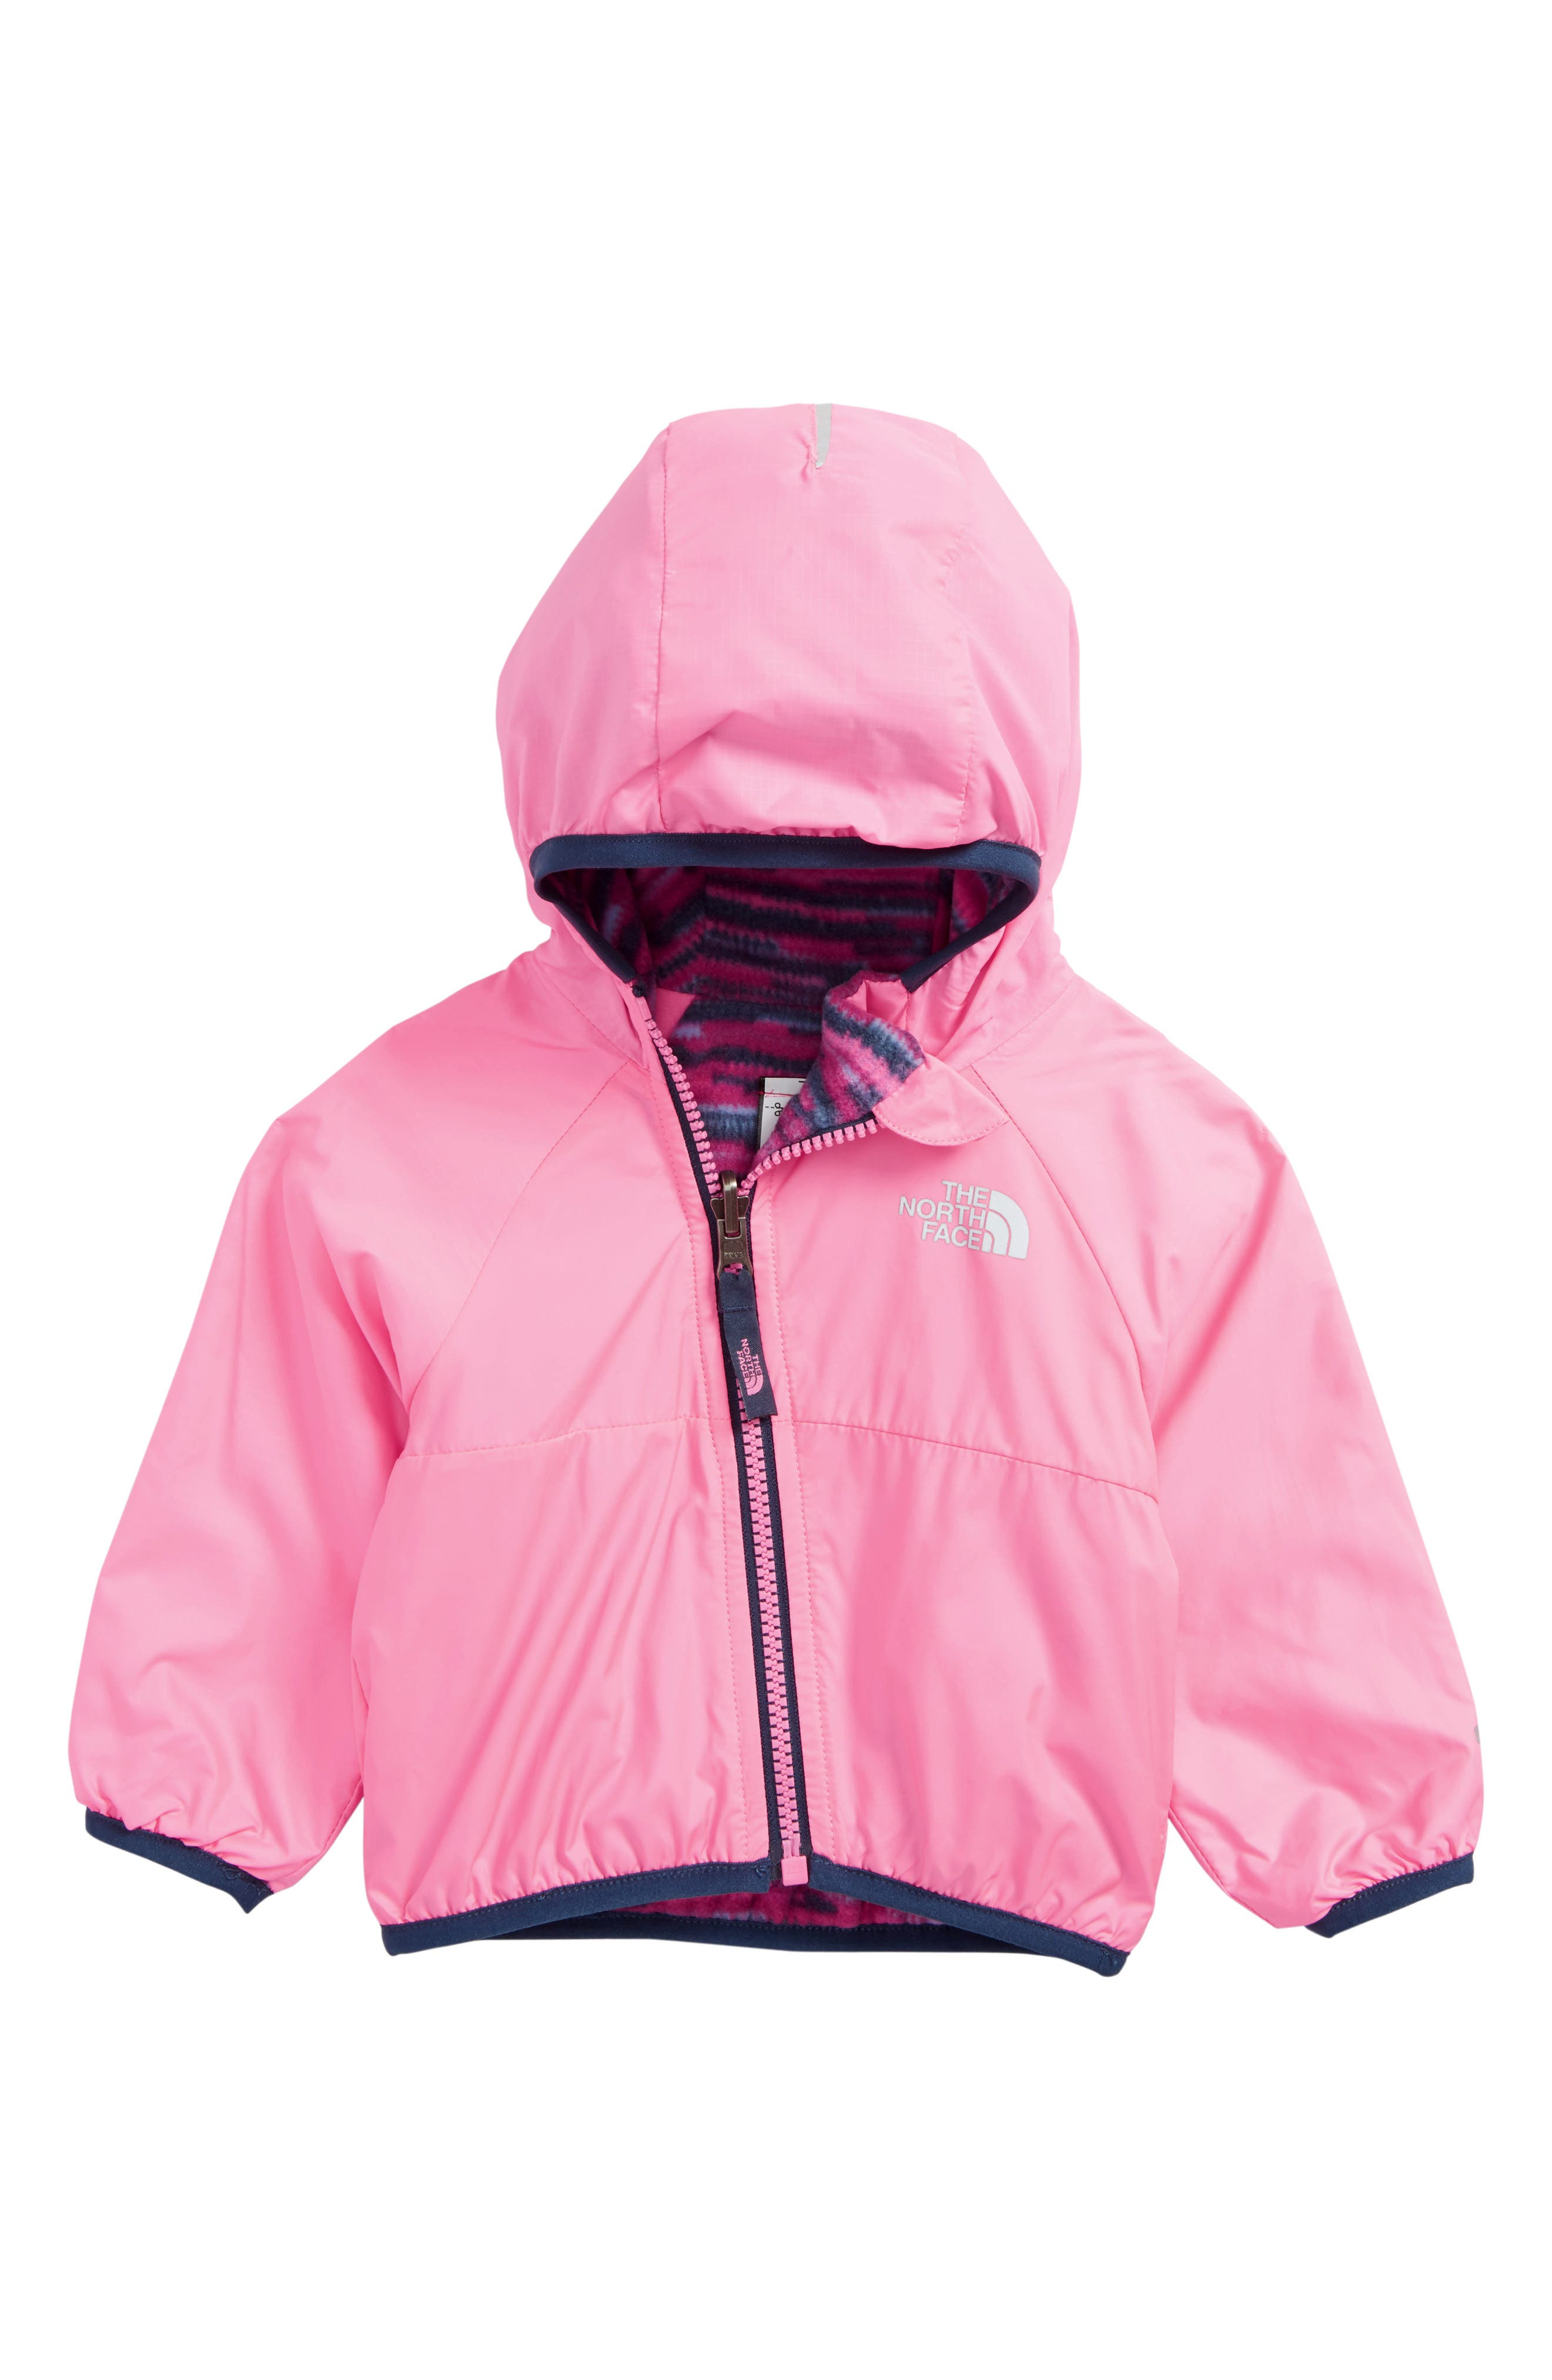 Alternate Image 1 Selected - The North Face Breezeway Reversible Water Repellent Windbreaker Jacket (Baby Girls)